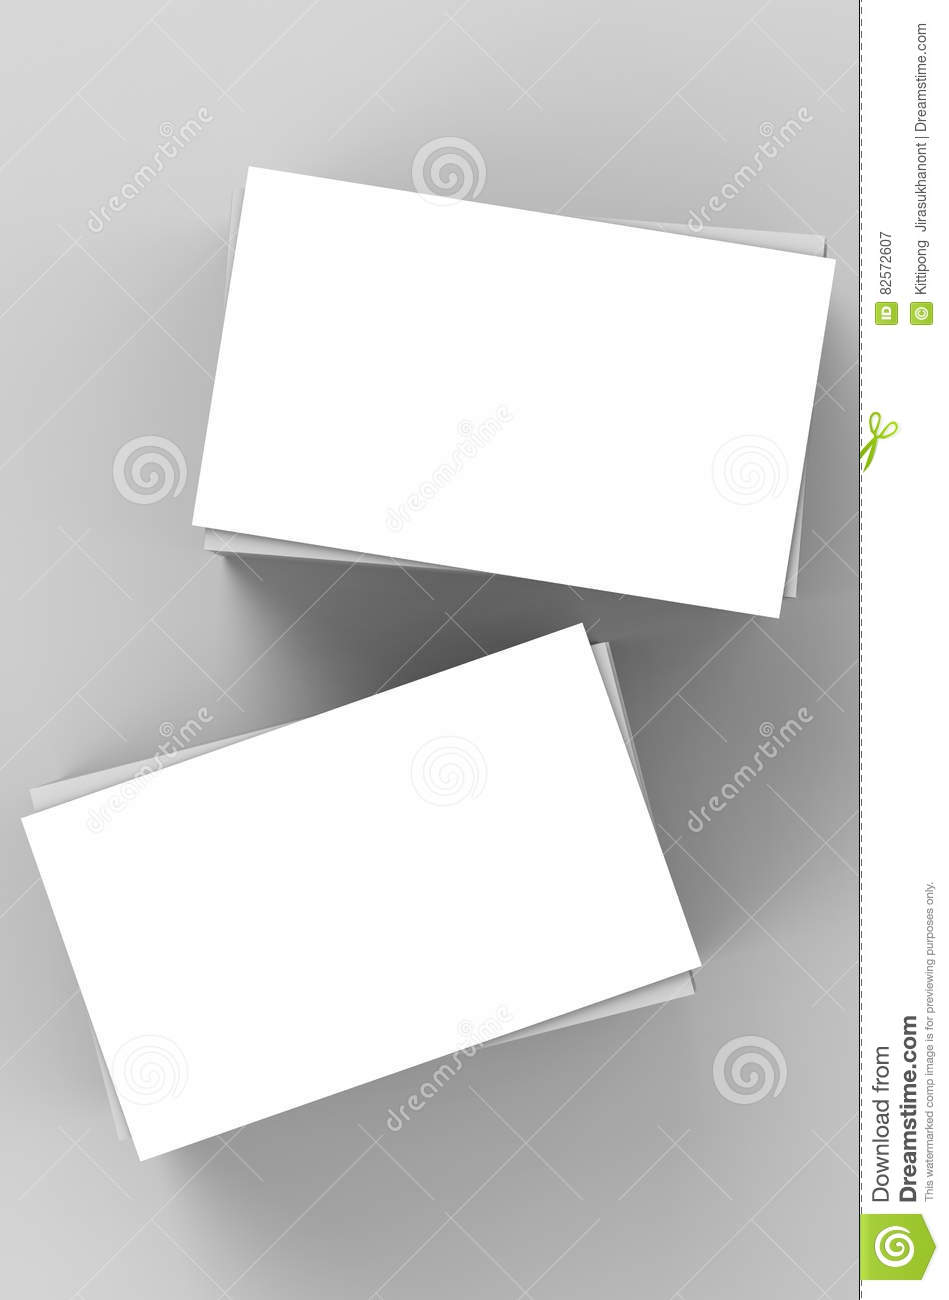 Stack of blank business cards stock illustration illustration of download stack of blank business cards stock illustration illustration of papers card 82572607 reheart Gallery